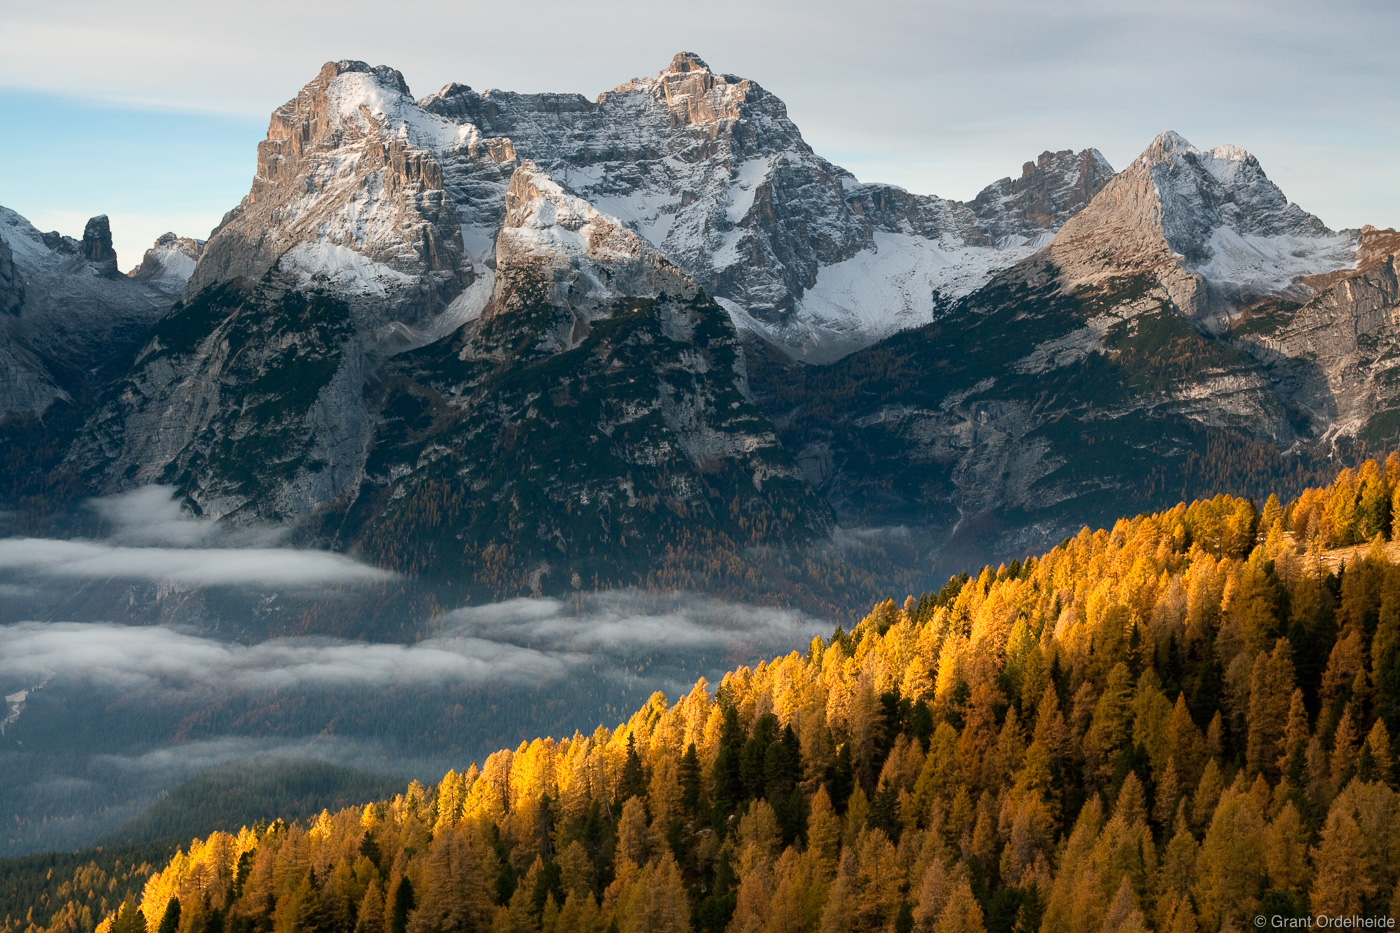 Early morning scene of clouds, larch trees, and the Sorapiss Group in the Dolomite Mountains.